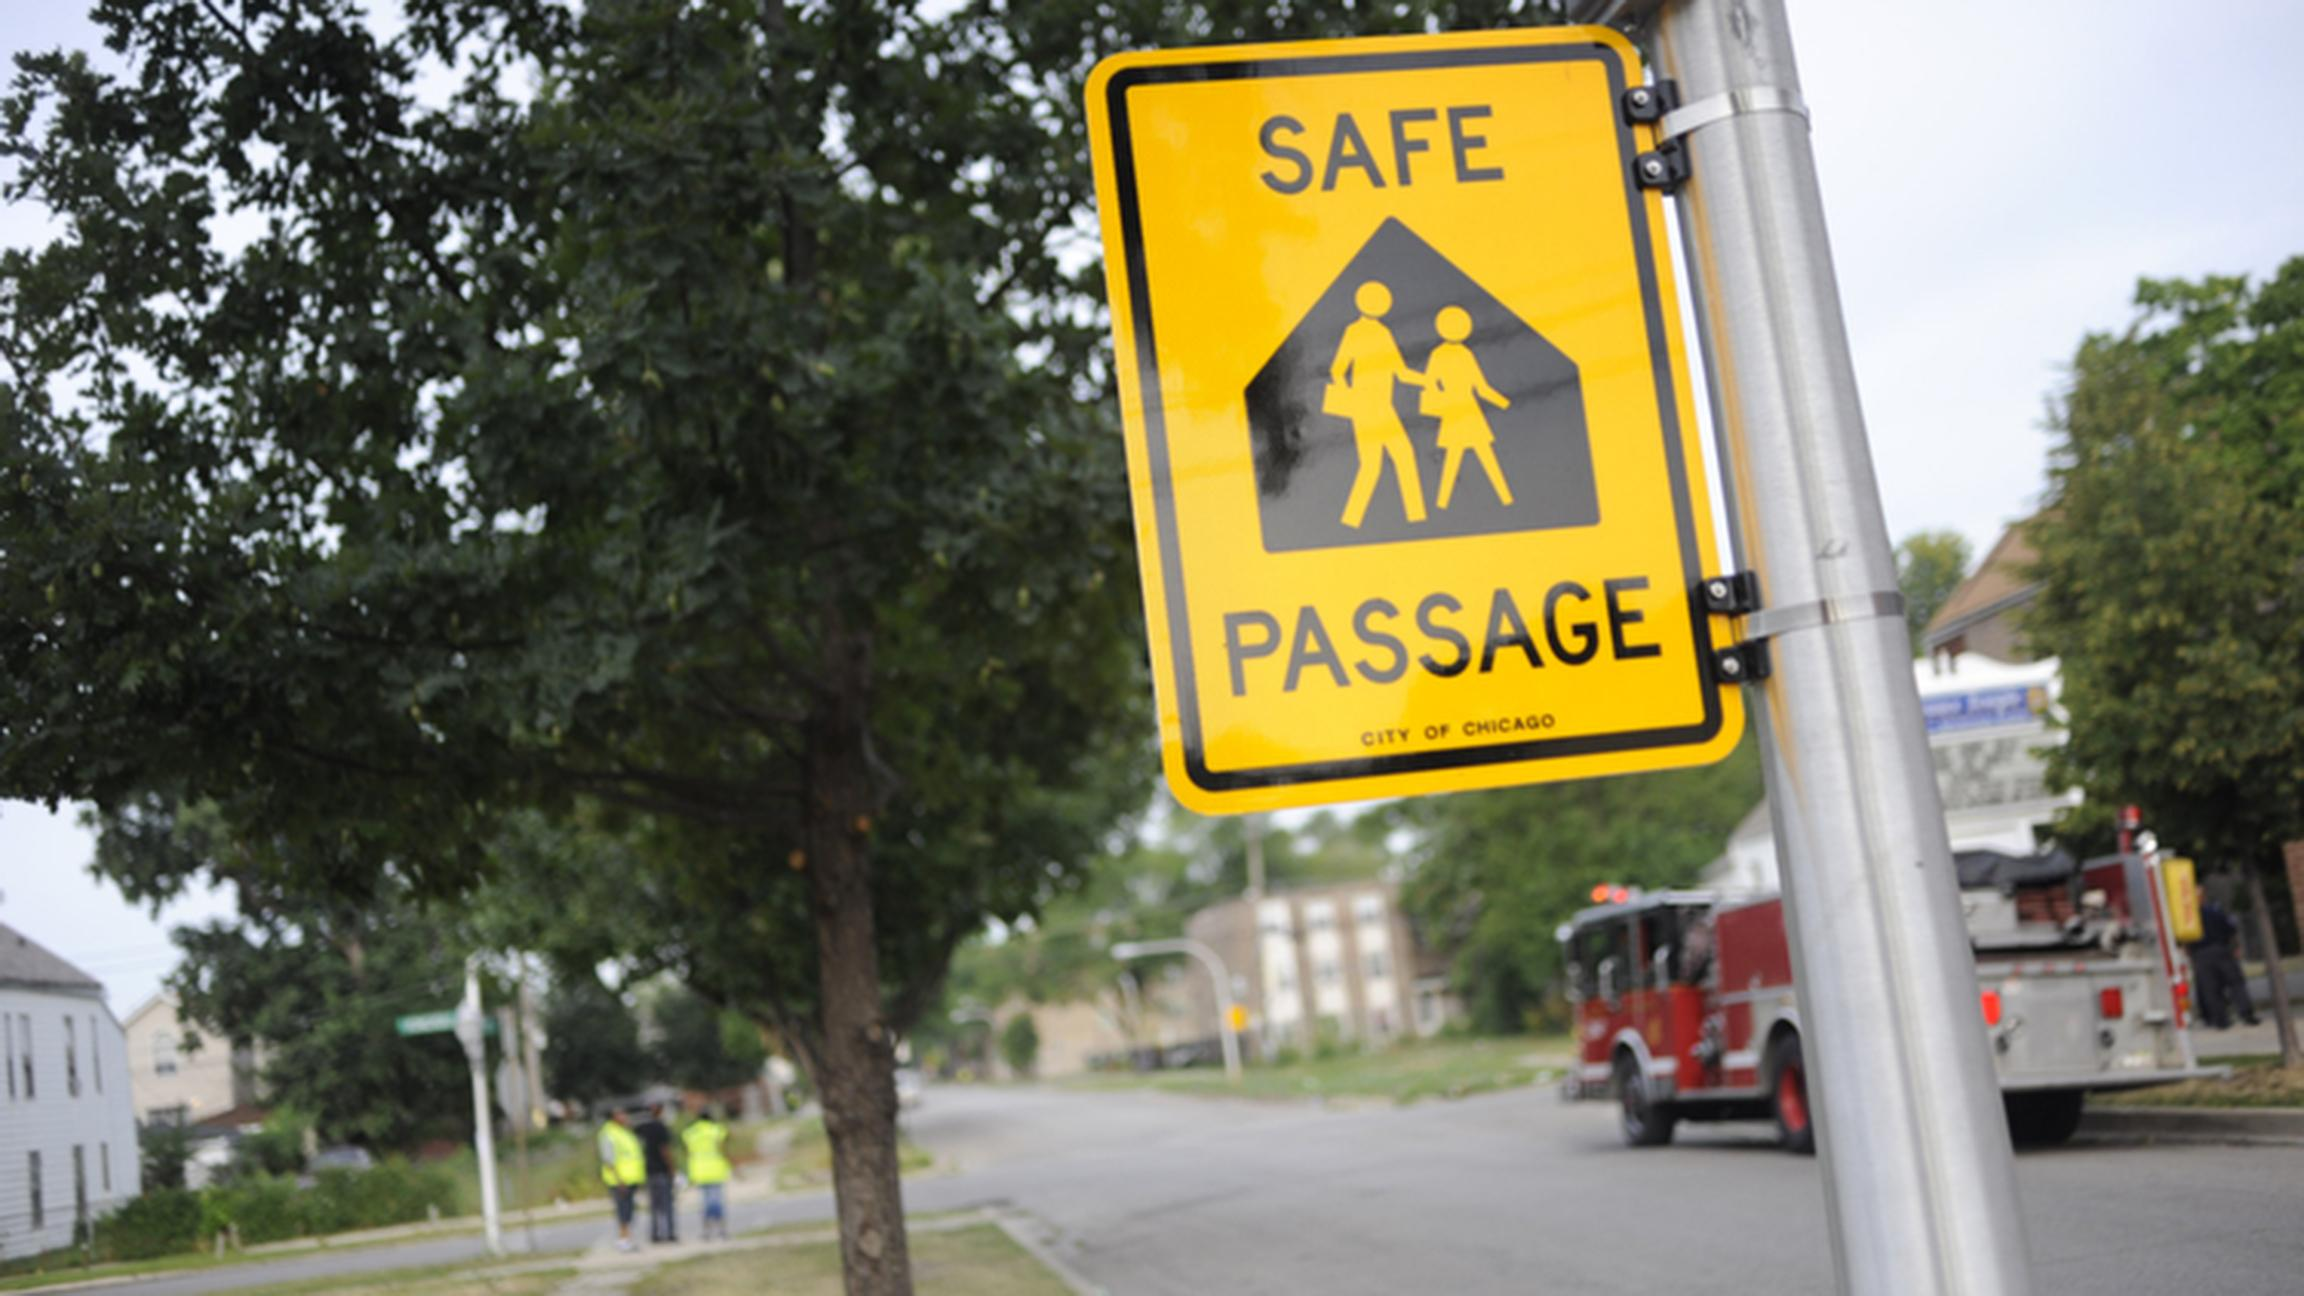 Chicago Public Schools says incidents of crime has fallen by a third along its Safe Passage routes since 2012. (WBEZ / Flickr)